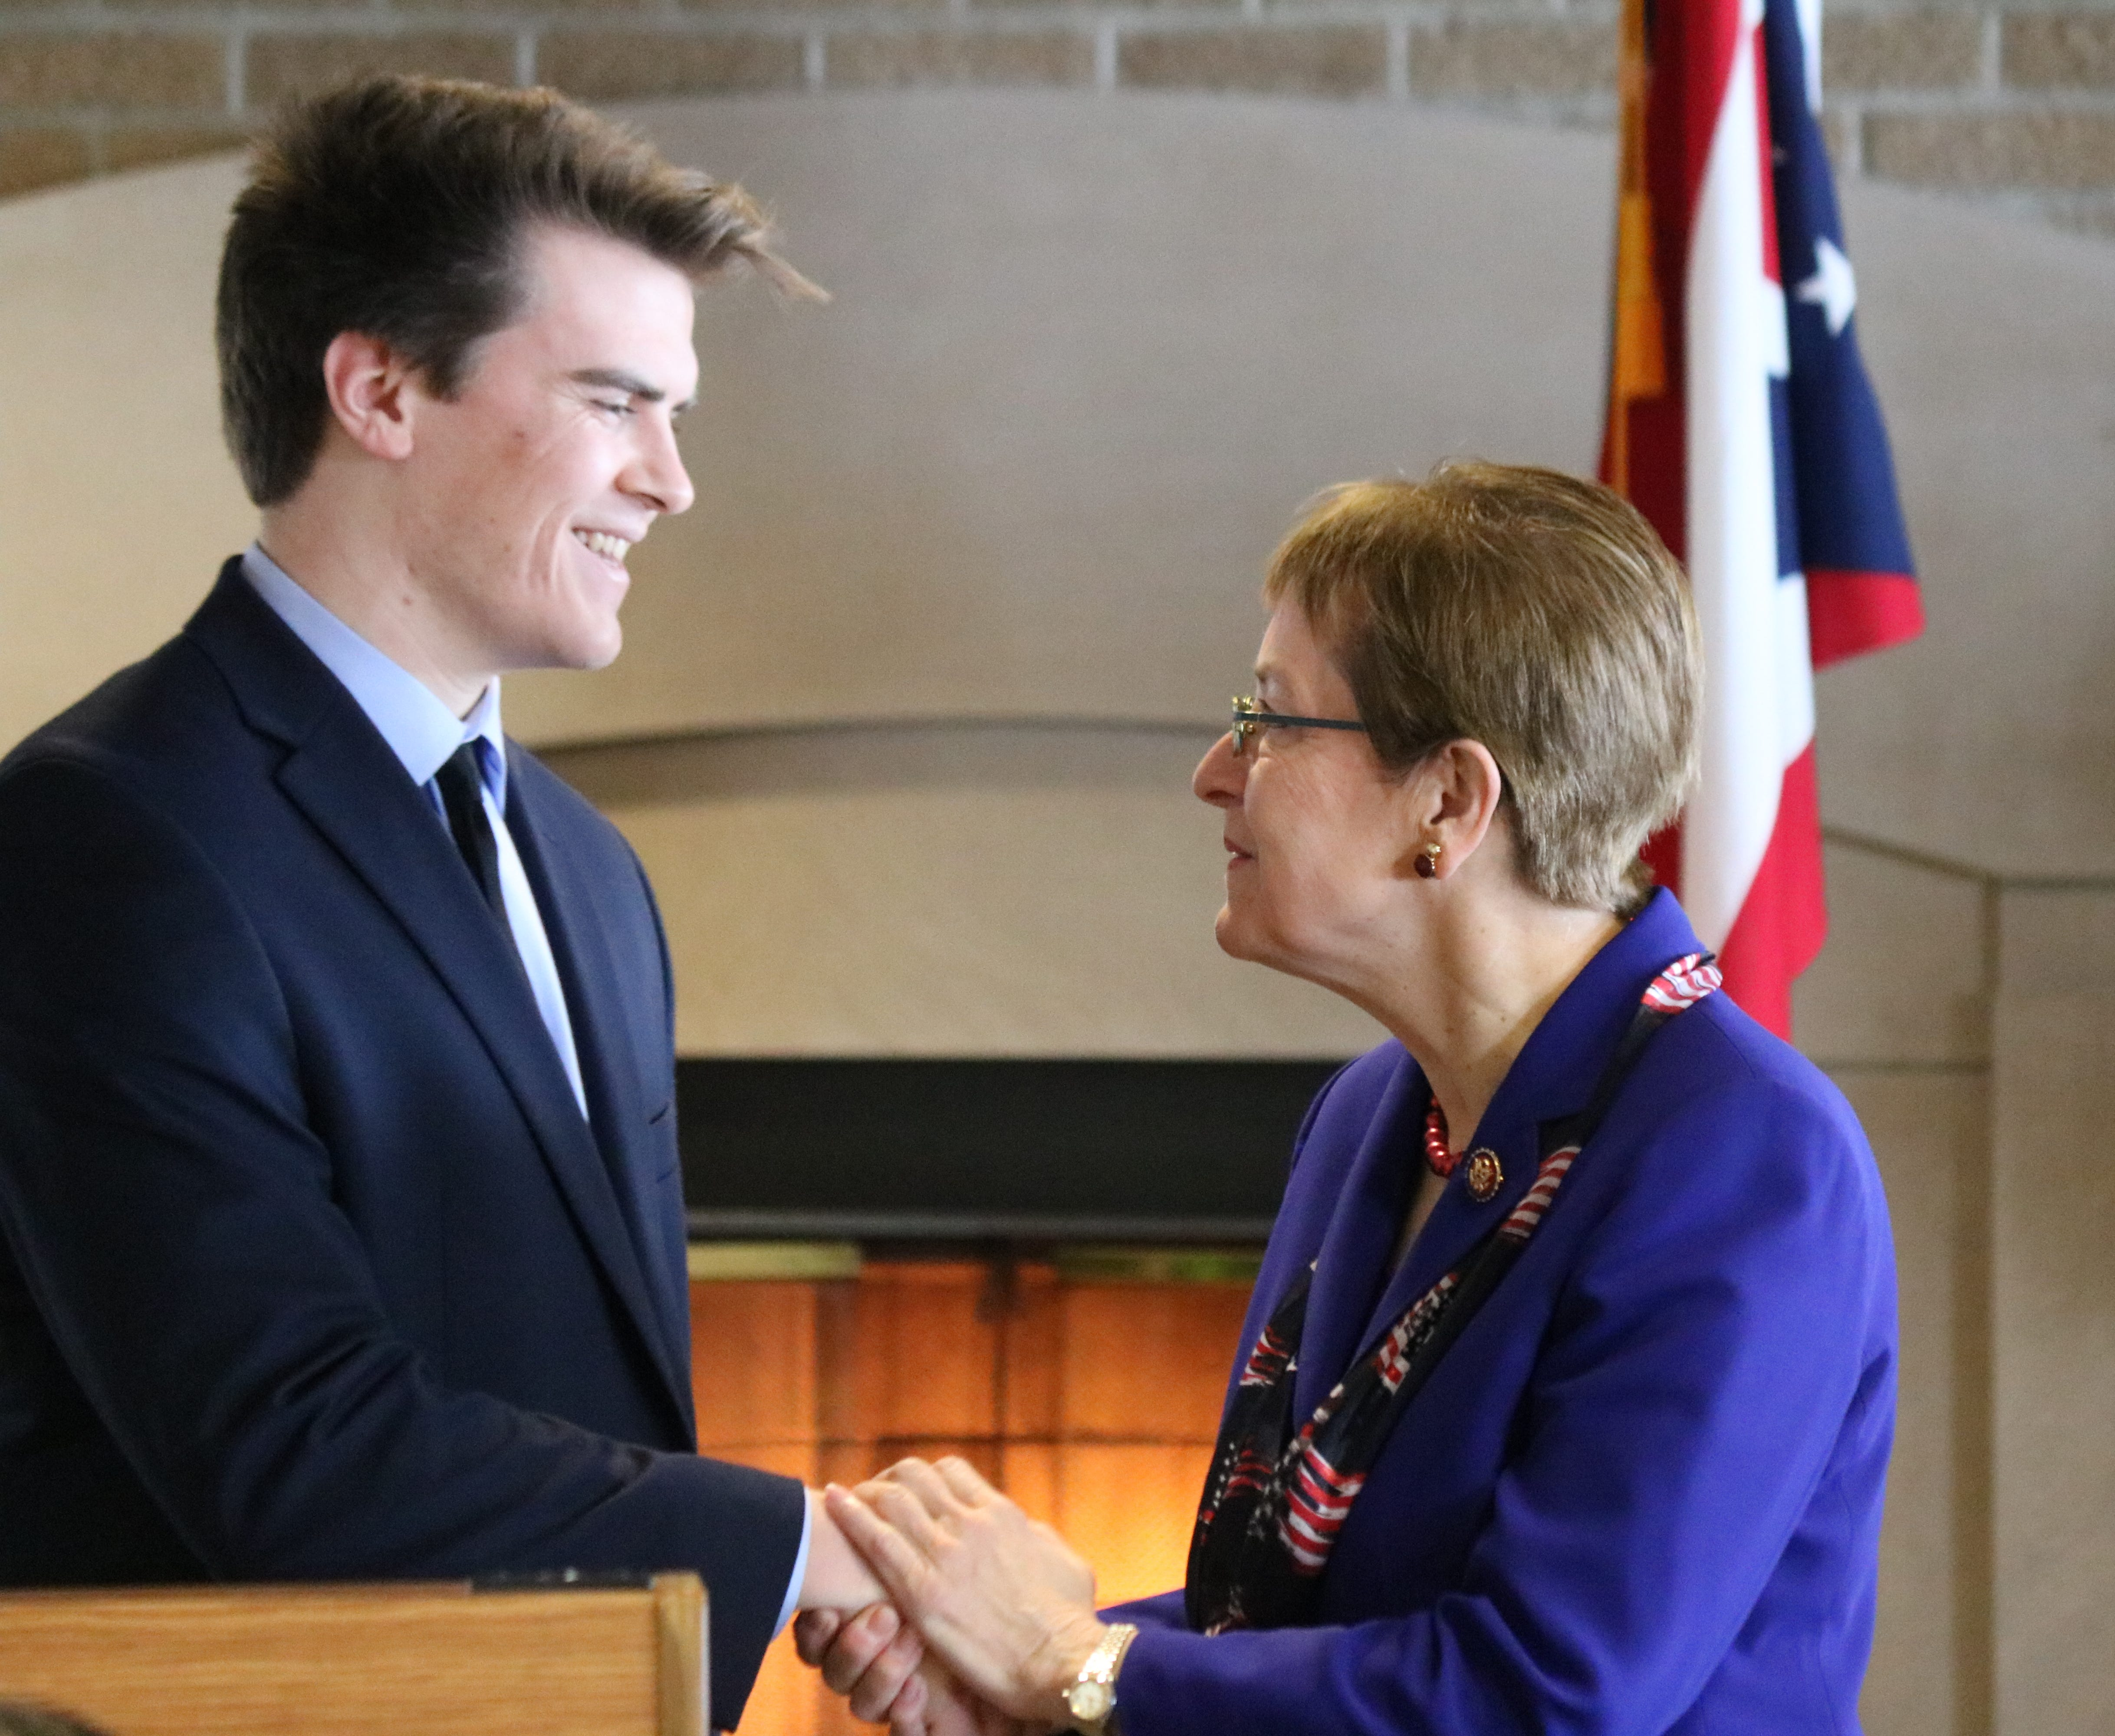 U.S. Rep. Marcy Kaptur, D-Toledo, congratulates Michael Larsen, her district's principal nominee to the U.S. Military Academy at West Point for the Class of 2023, on Saturday at Camp Perry.